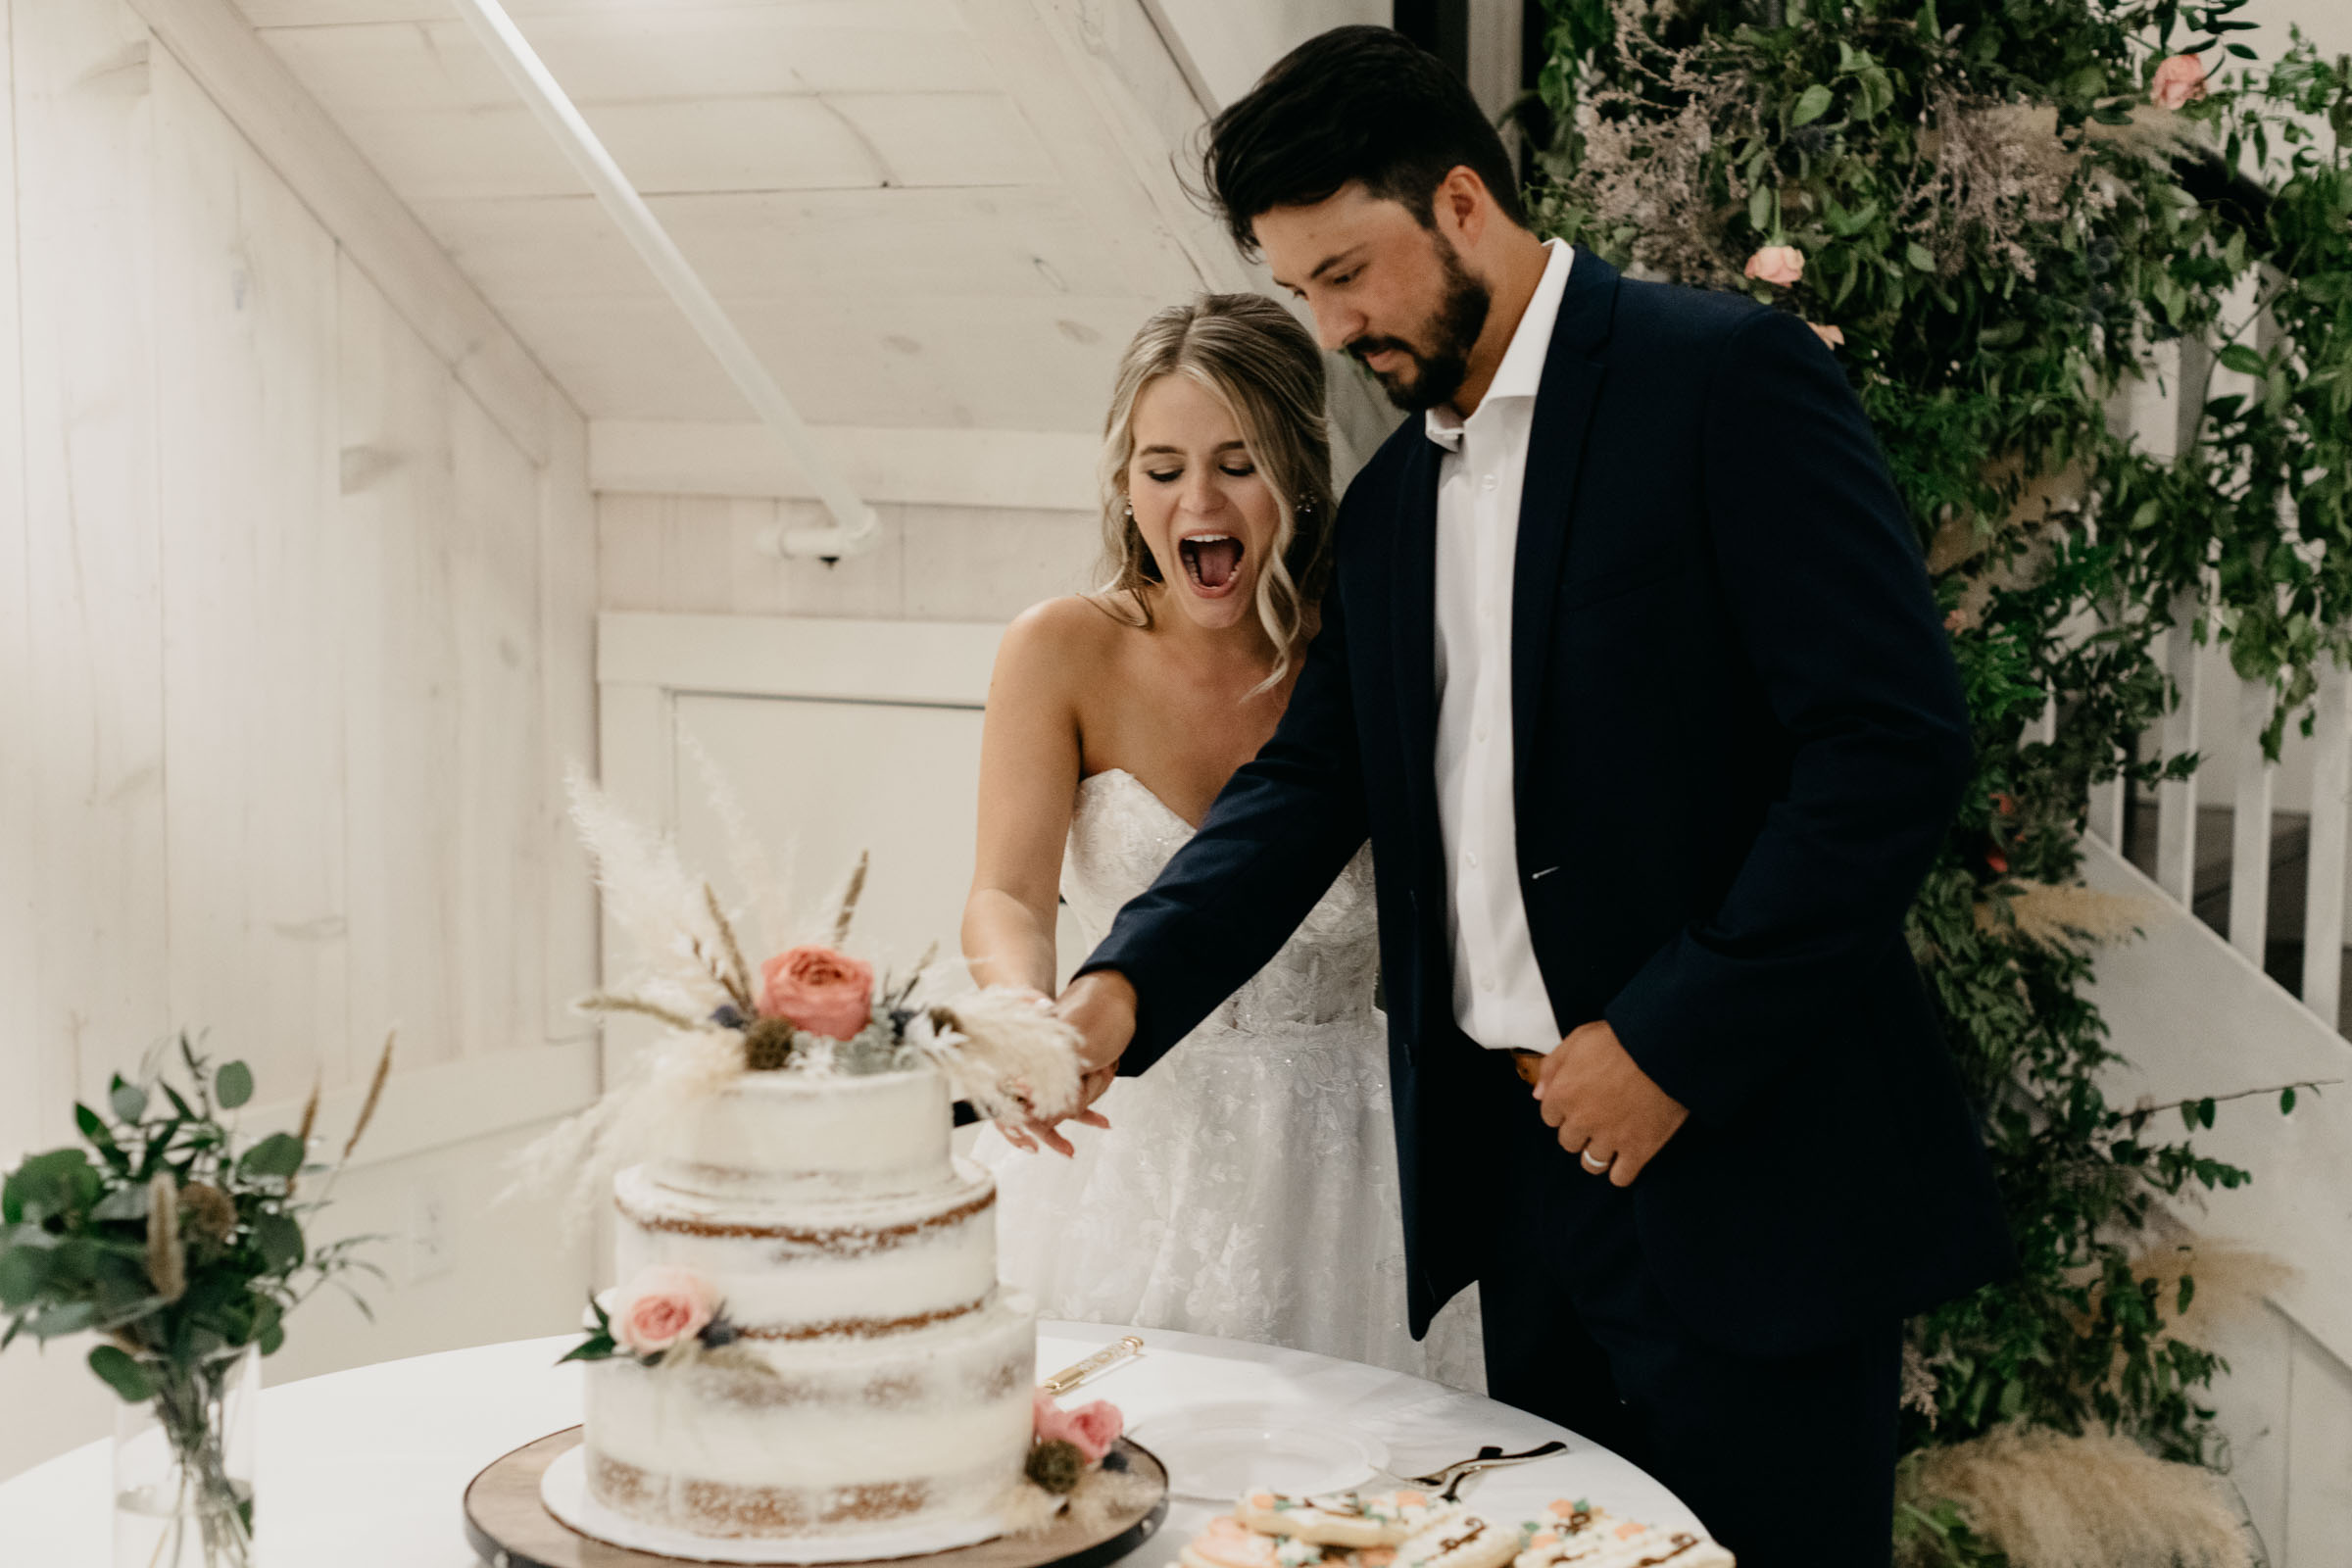 adorable couple cutting wedding cake during DFW wedding reception